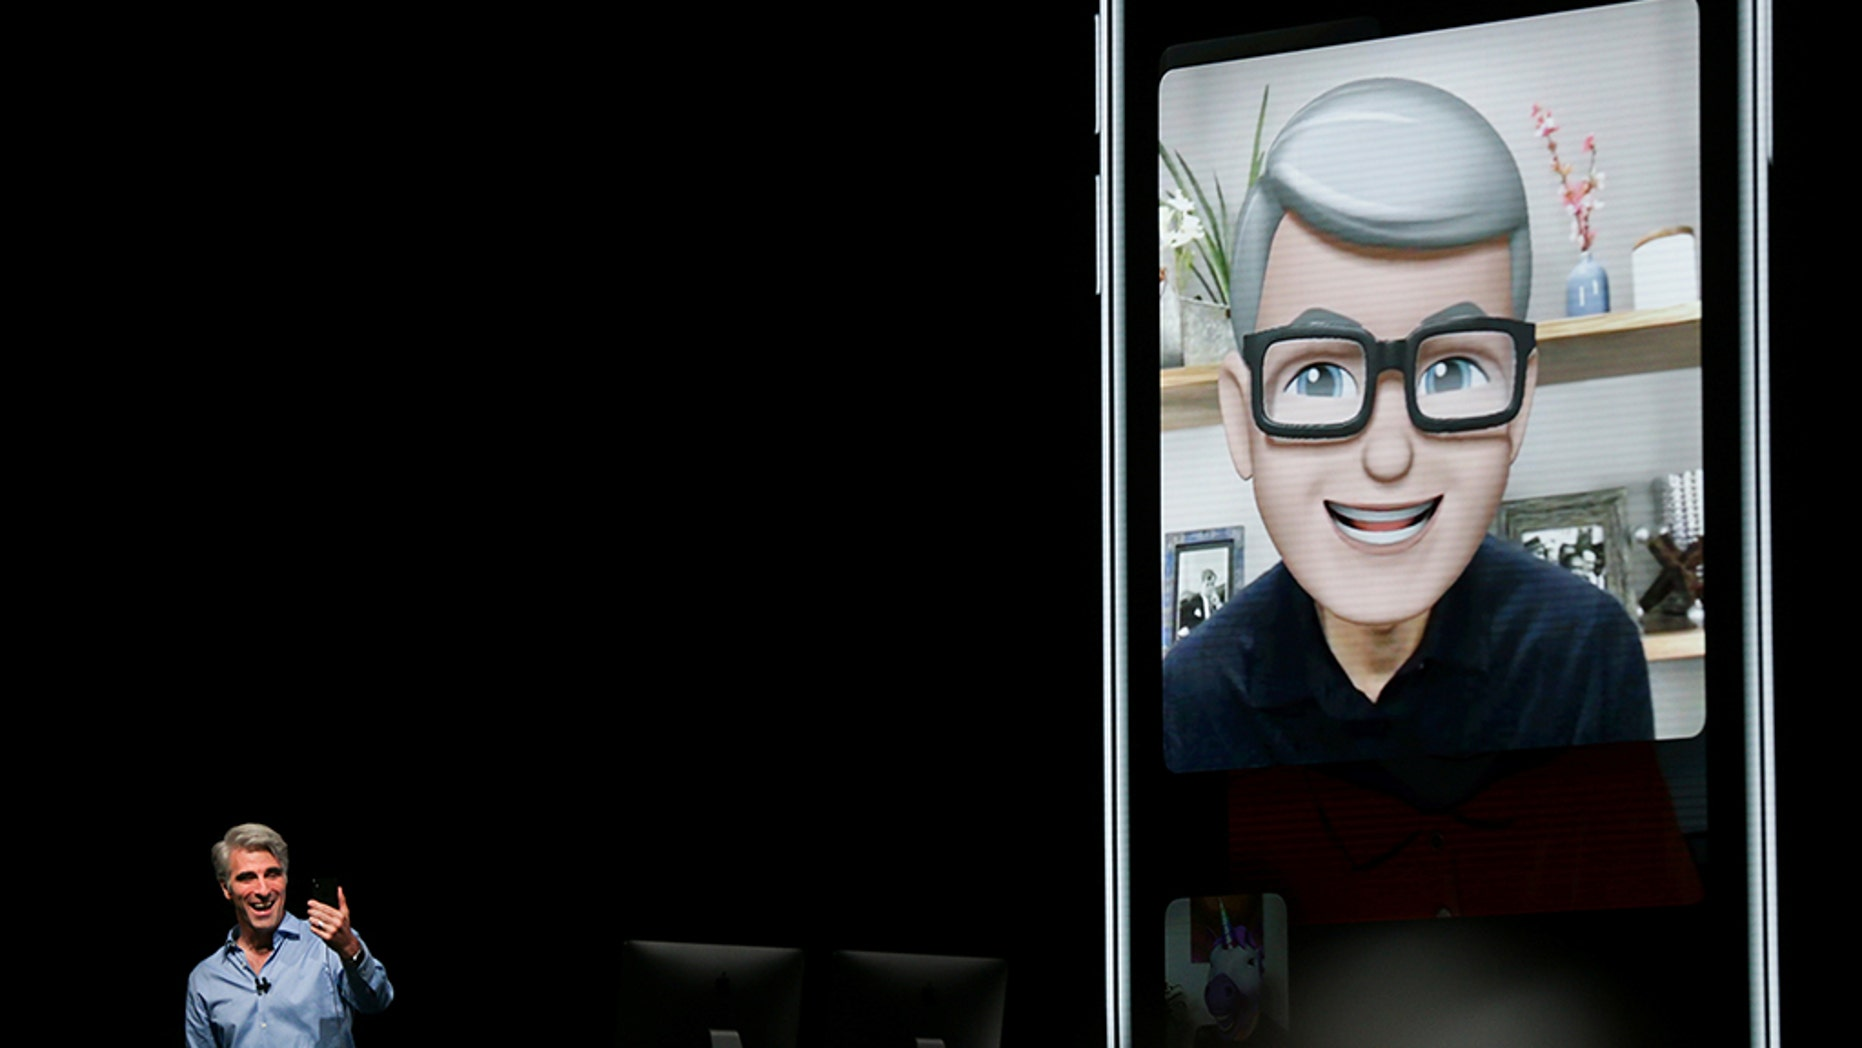 Apple senior vice president of Software Engineering Craig Federighi speaks with Apple CEO Tim Cook using the new group Facetime feature at the Apple Worldwide Developer conference (WWDC) in San Jose, California, U.S., June 4, 2018.   REUTERS/Elijah Nouvelage - RC1A8138D8E0